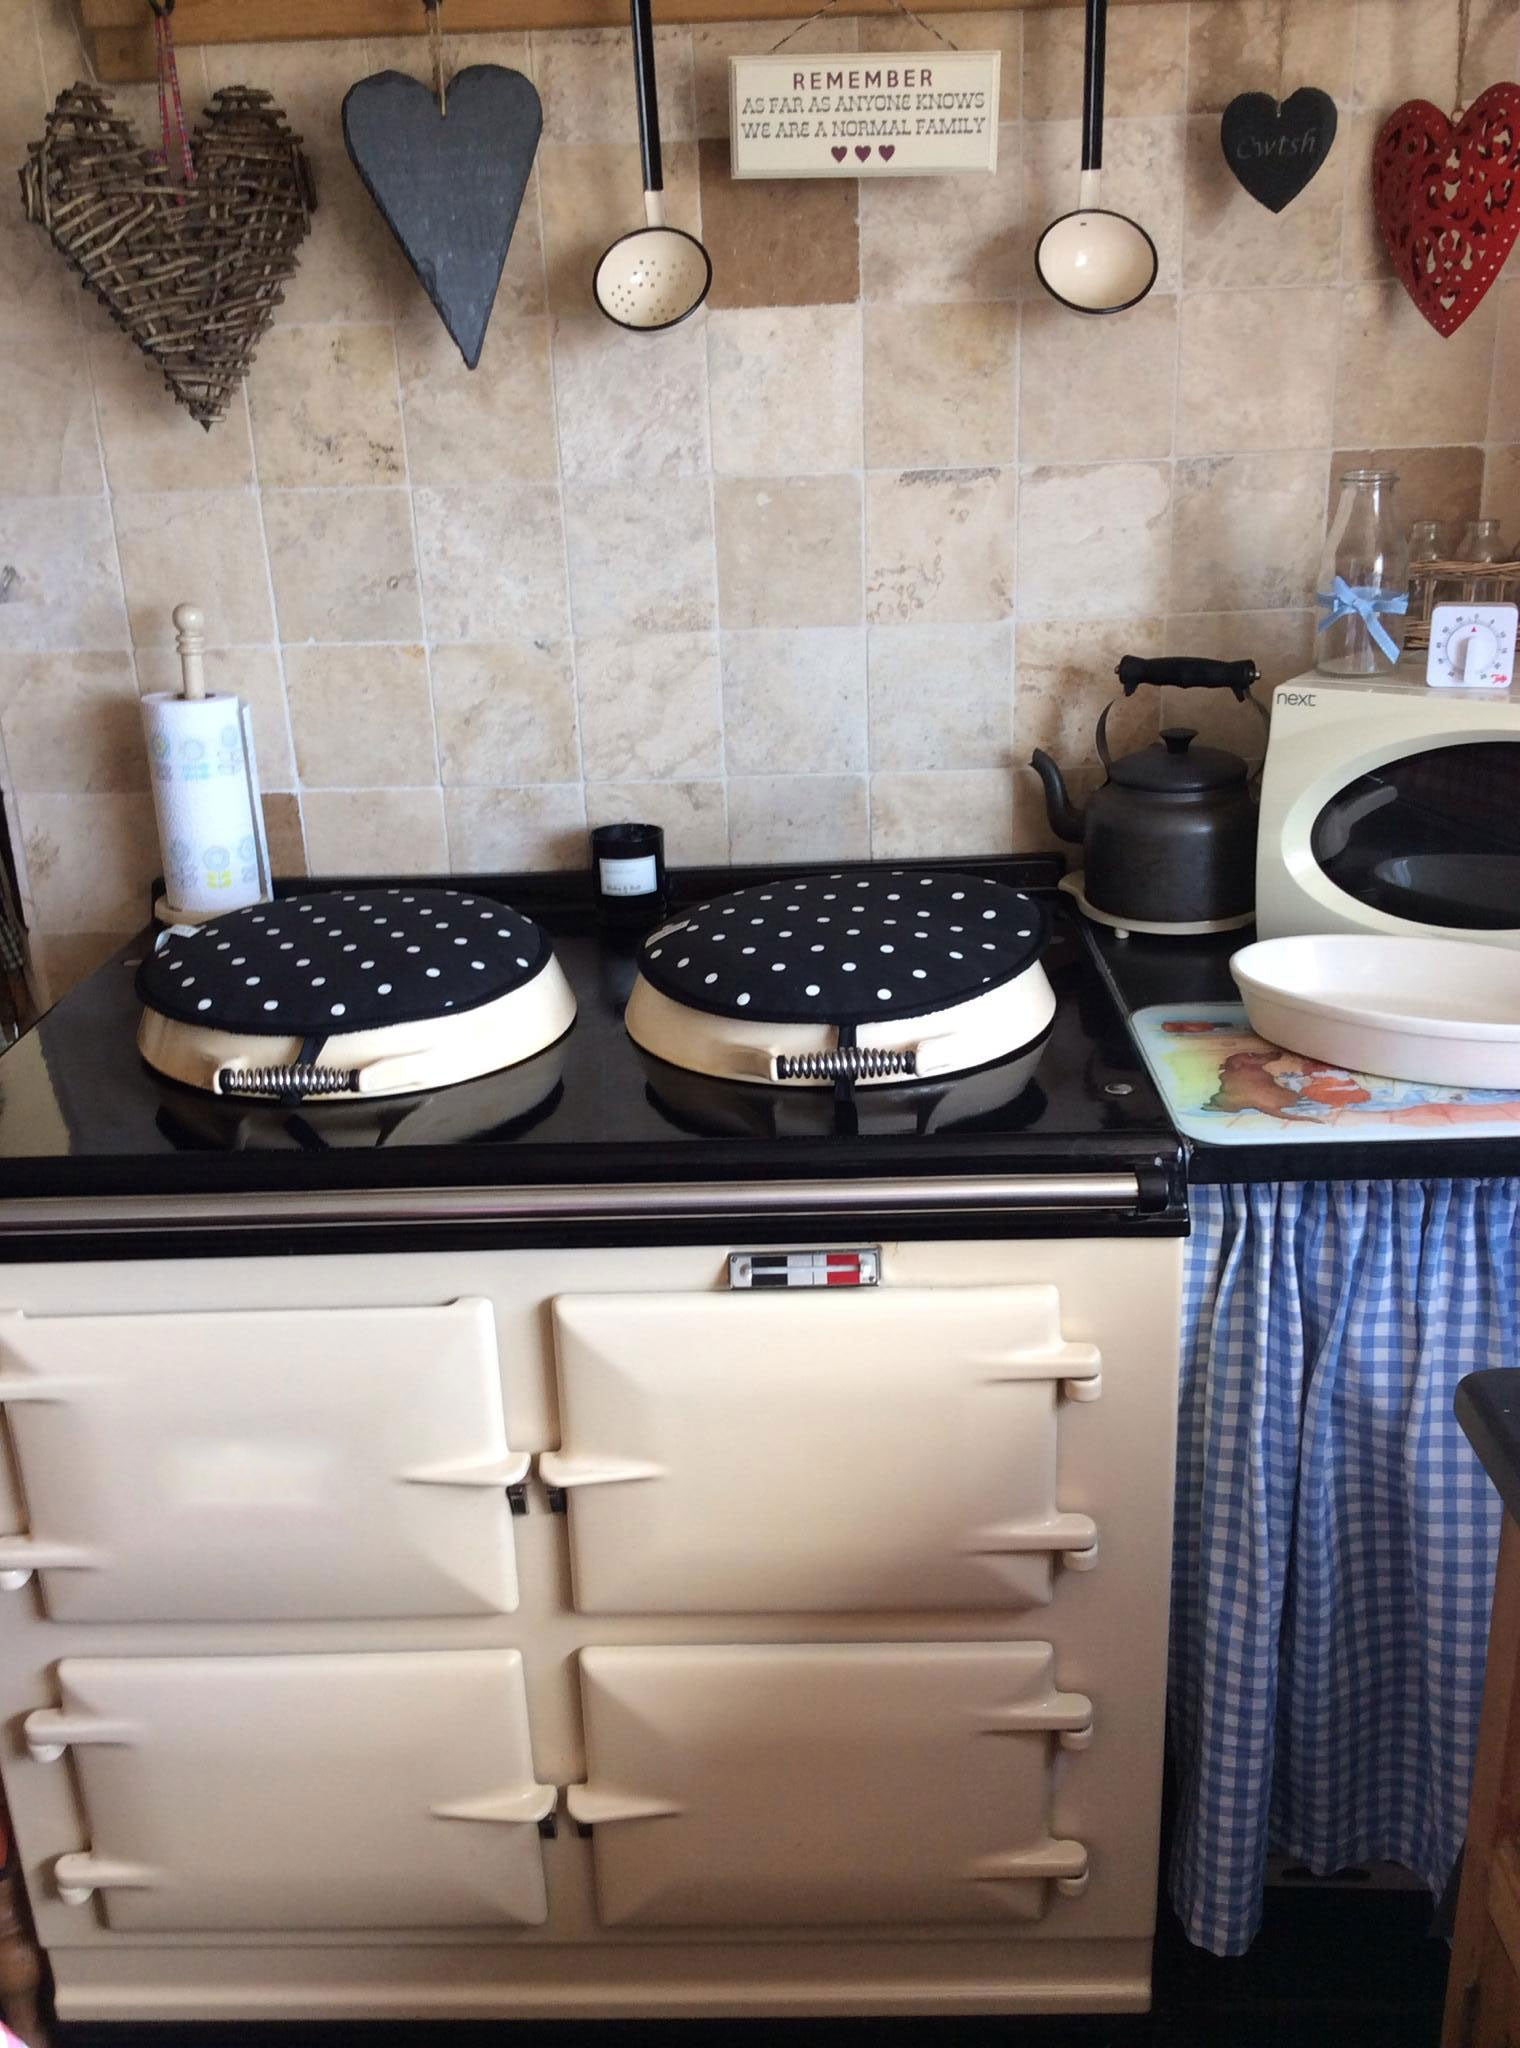 2 oven in cream with 'Dotty' hob covers by Blake & Bull